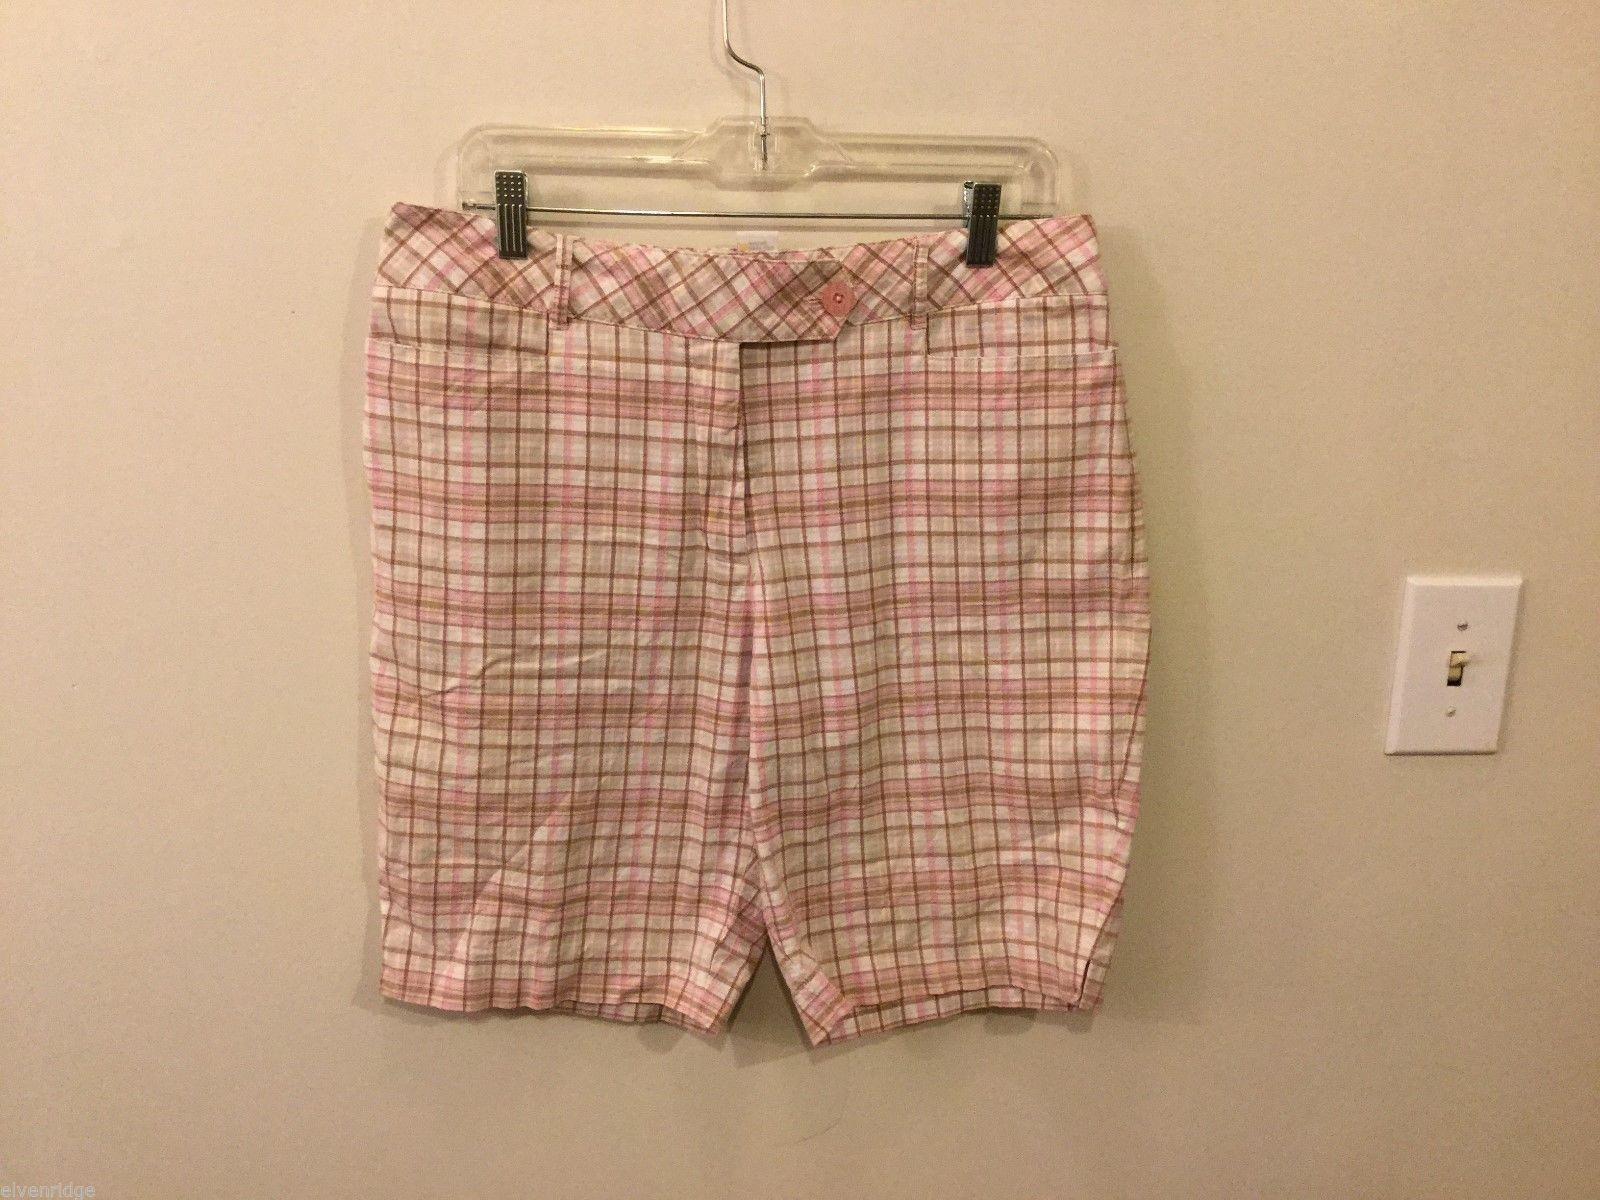 IZOD Womens Pink, Brown, and White Plaid Bermuda Shorts, Size 10